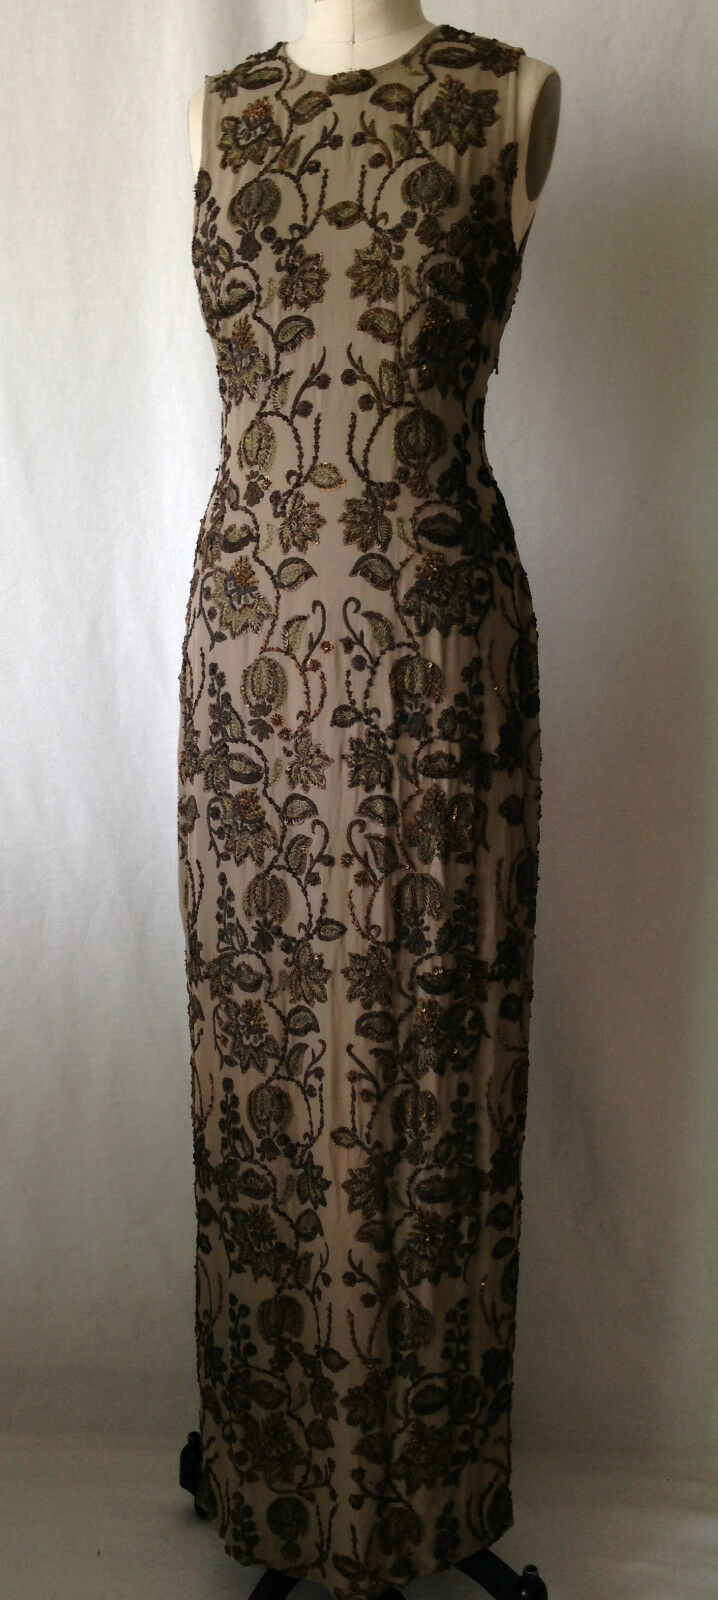 Floor Length Special Occasion Embroidery Dress. Size 4. Mother of the bride.